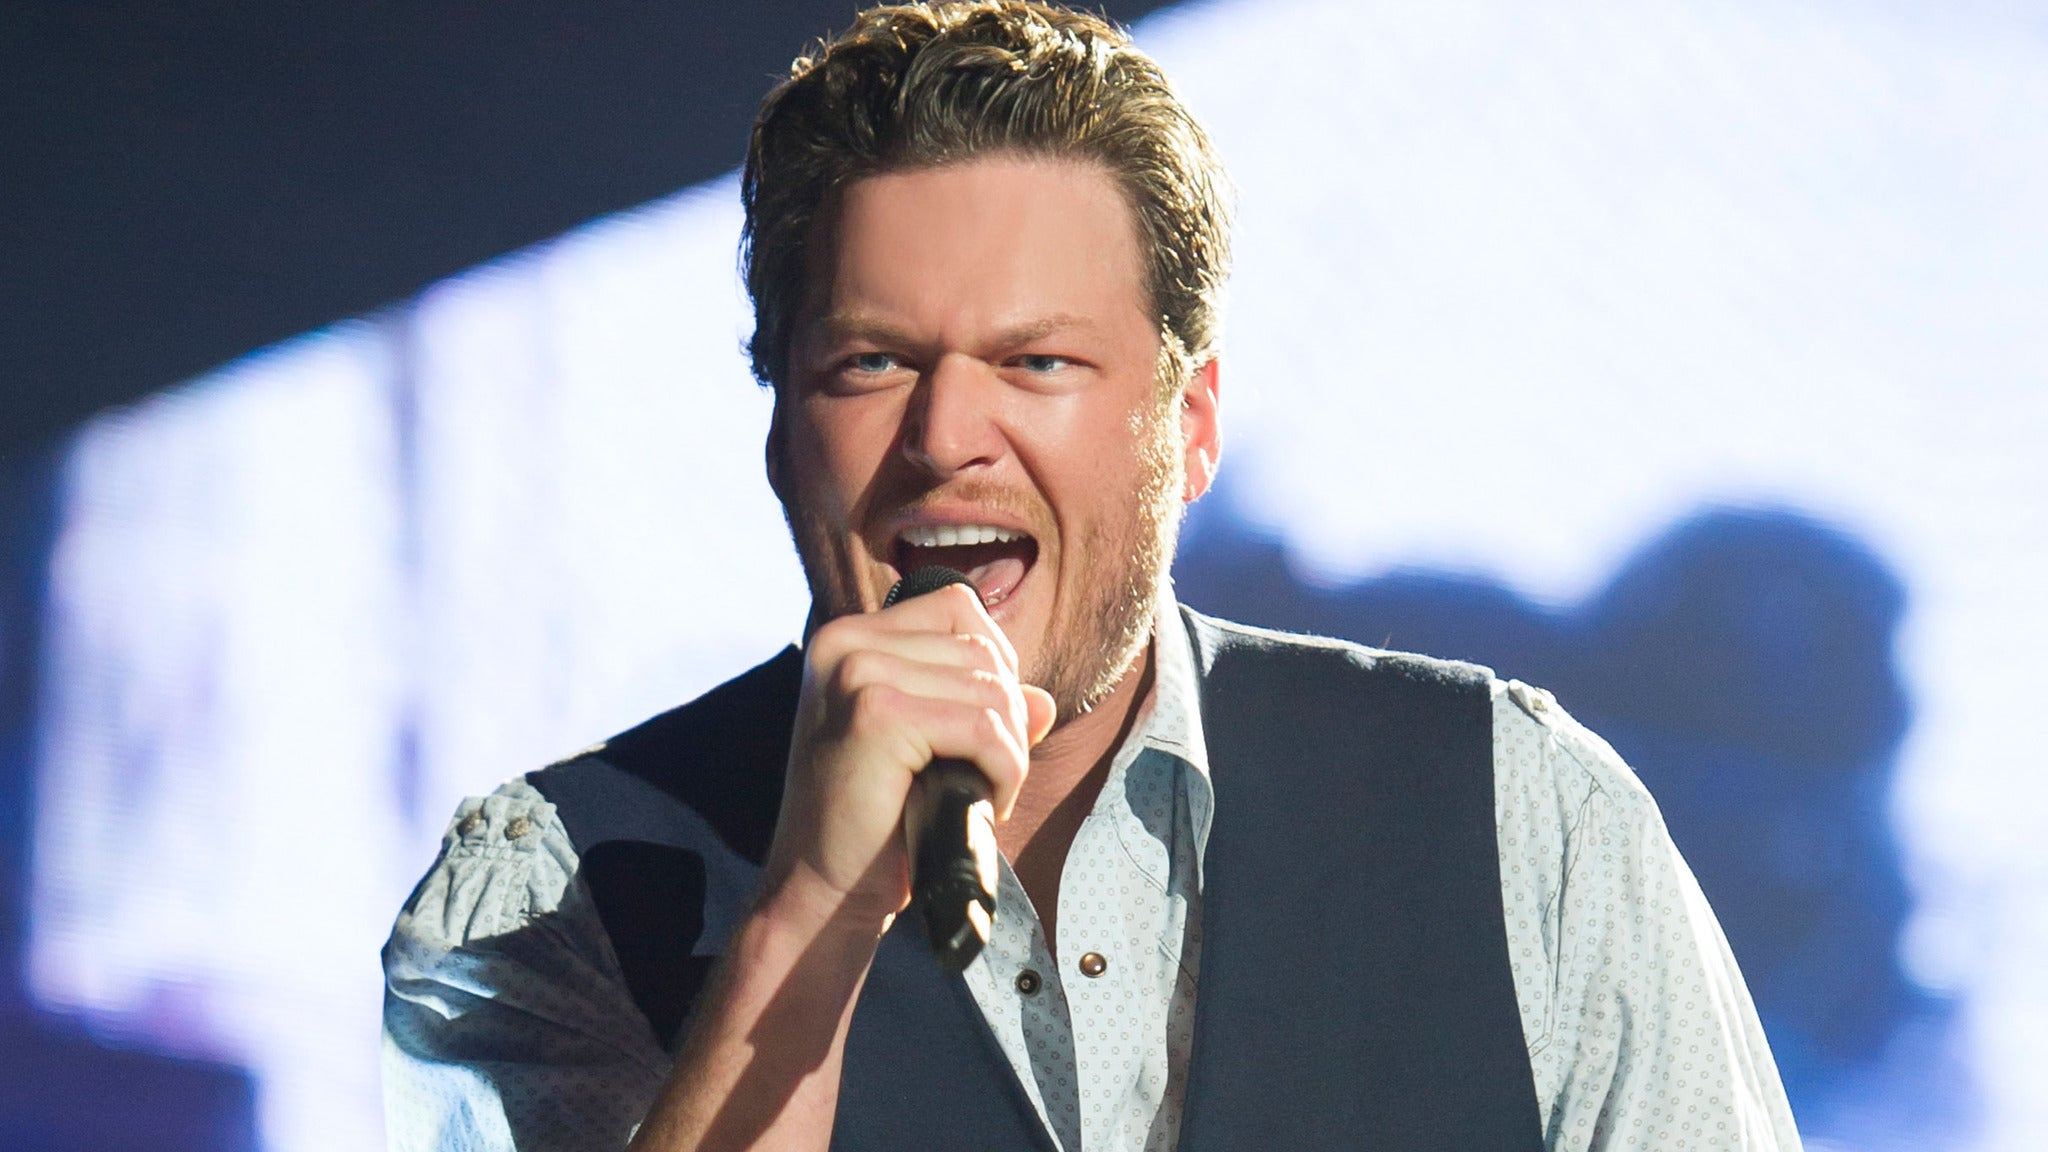 Blake Shelton at Talking Stick Resort